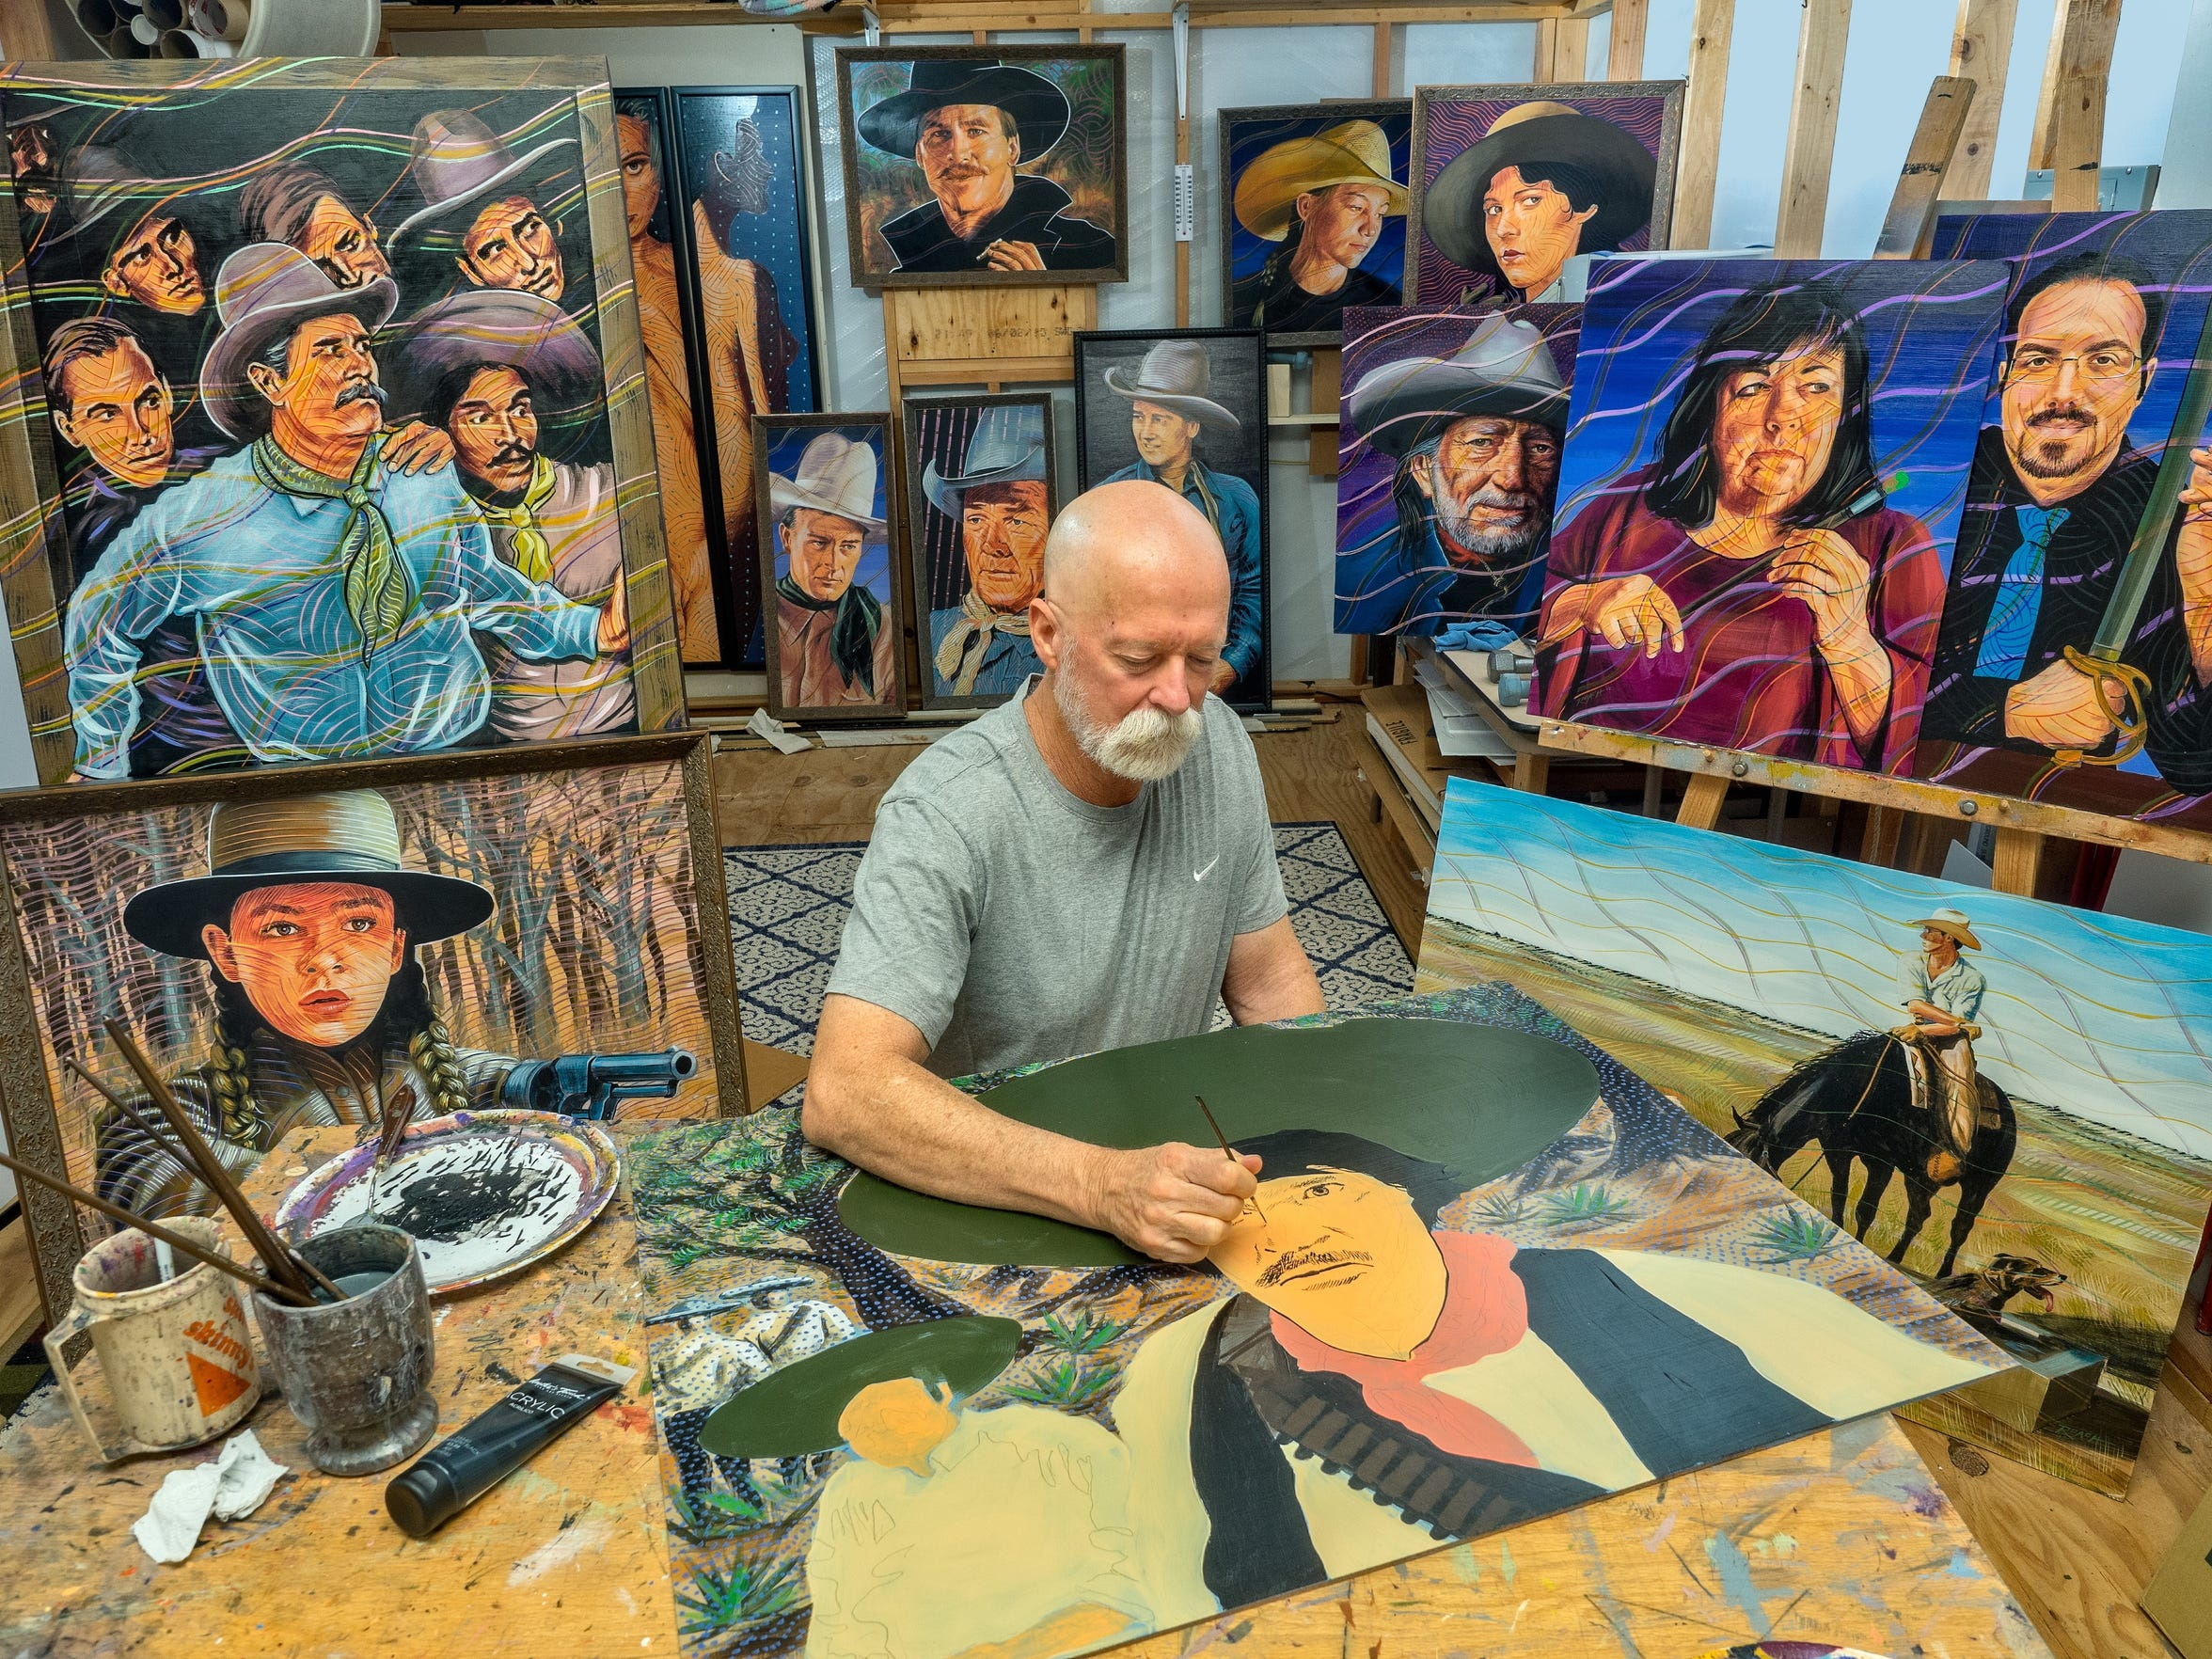 Don't put that paint brush down, a figure appears to be advising artist Chuck Roach, at work in his studio with others looking on.